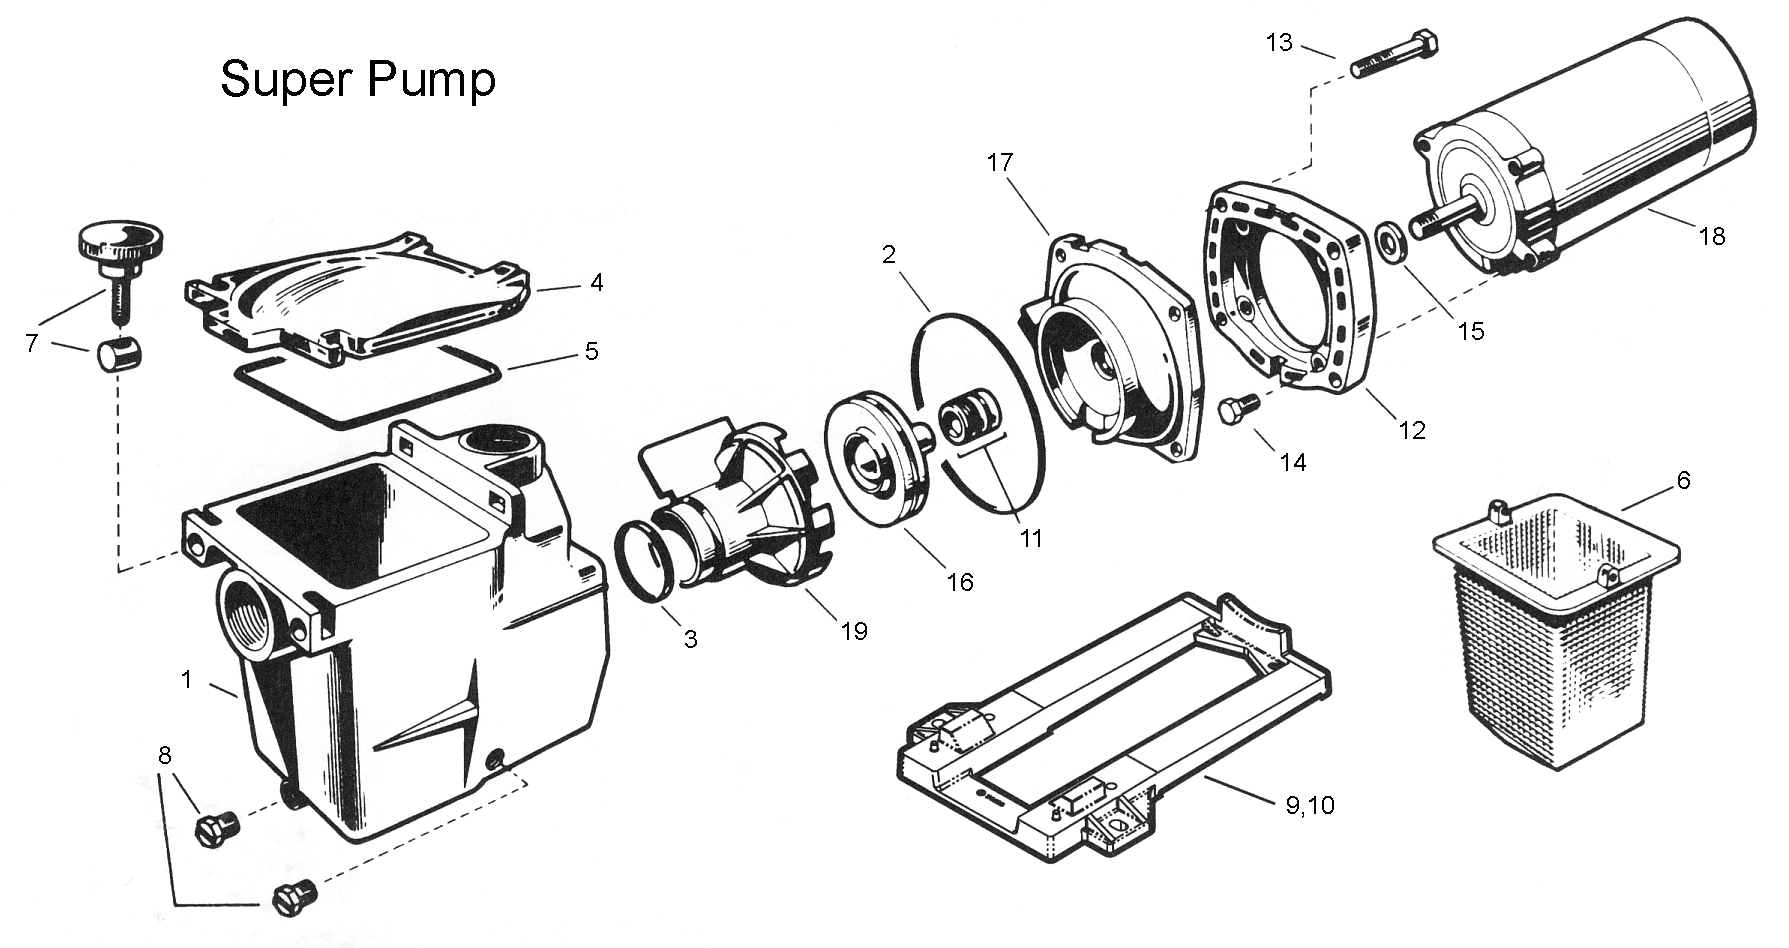 Free Shipping On Hayward Super Pump 2600X Parts with regard to Hayward Super Pump 2 Parts Diagram